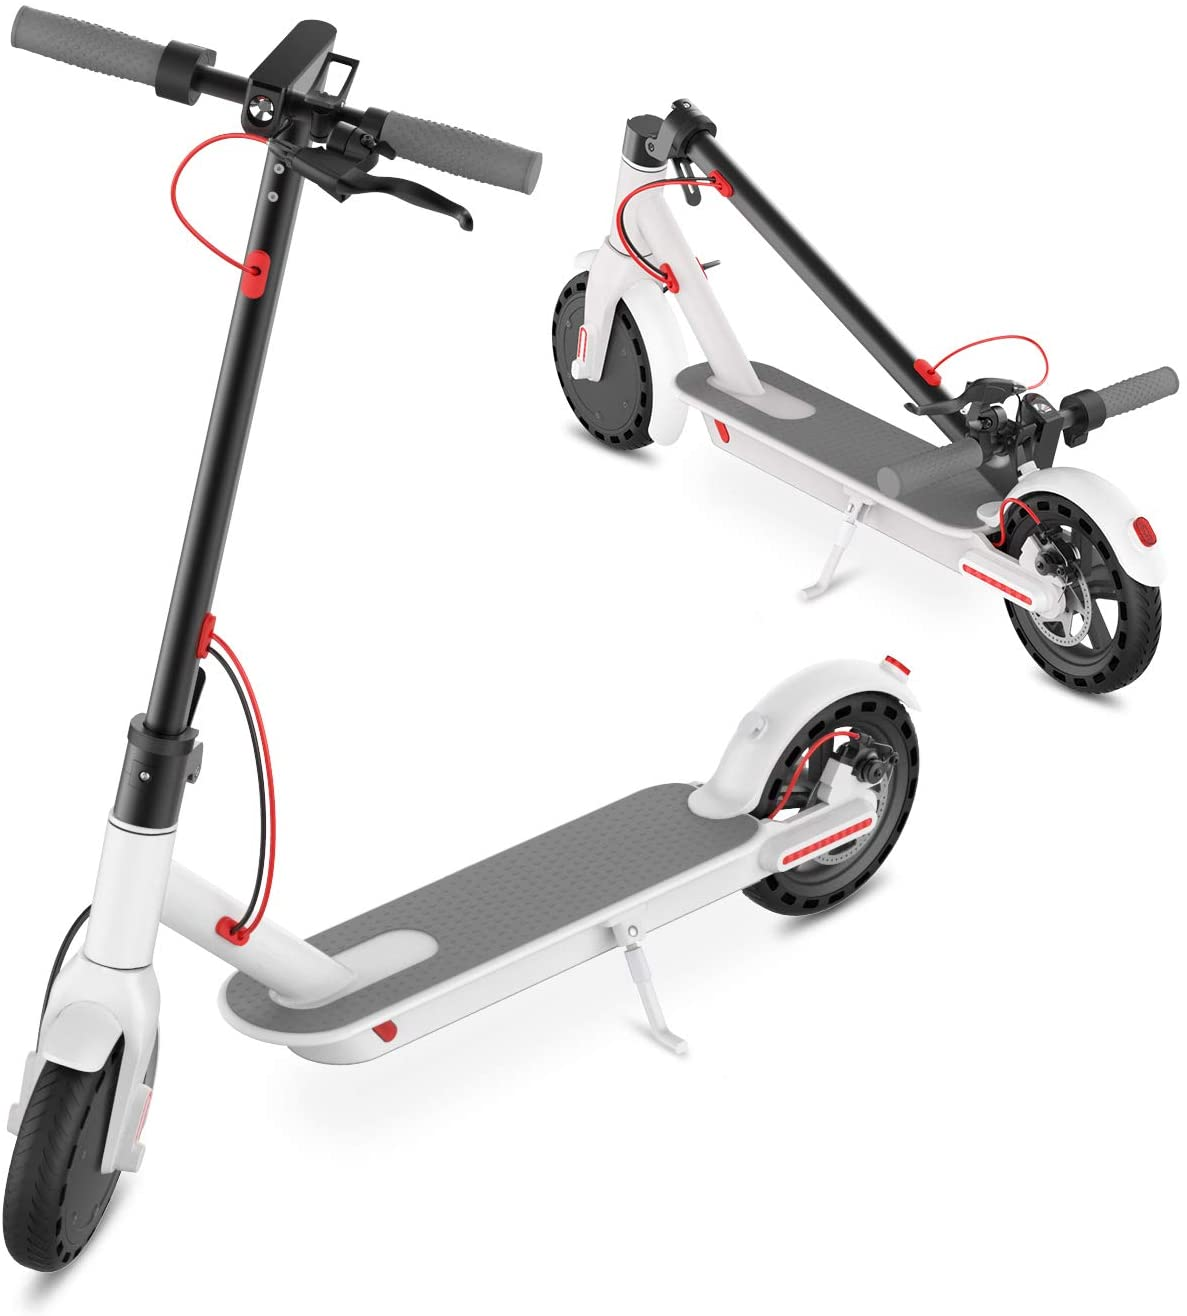 Guide to Buying an Adult Electric Scooters